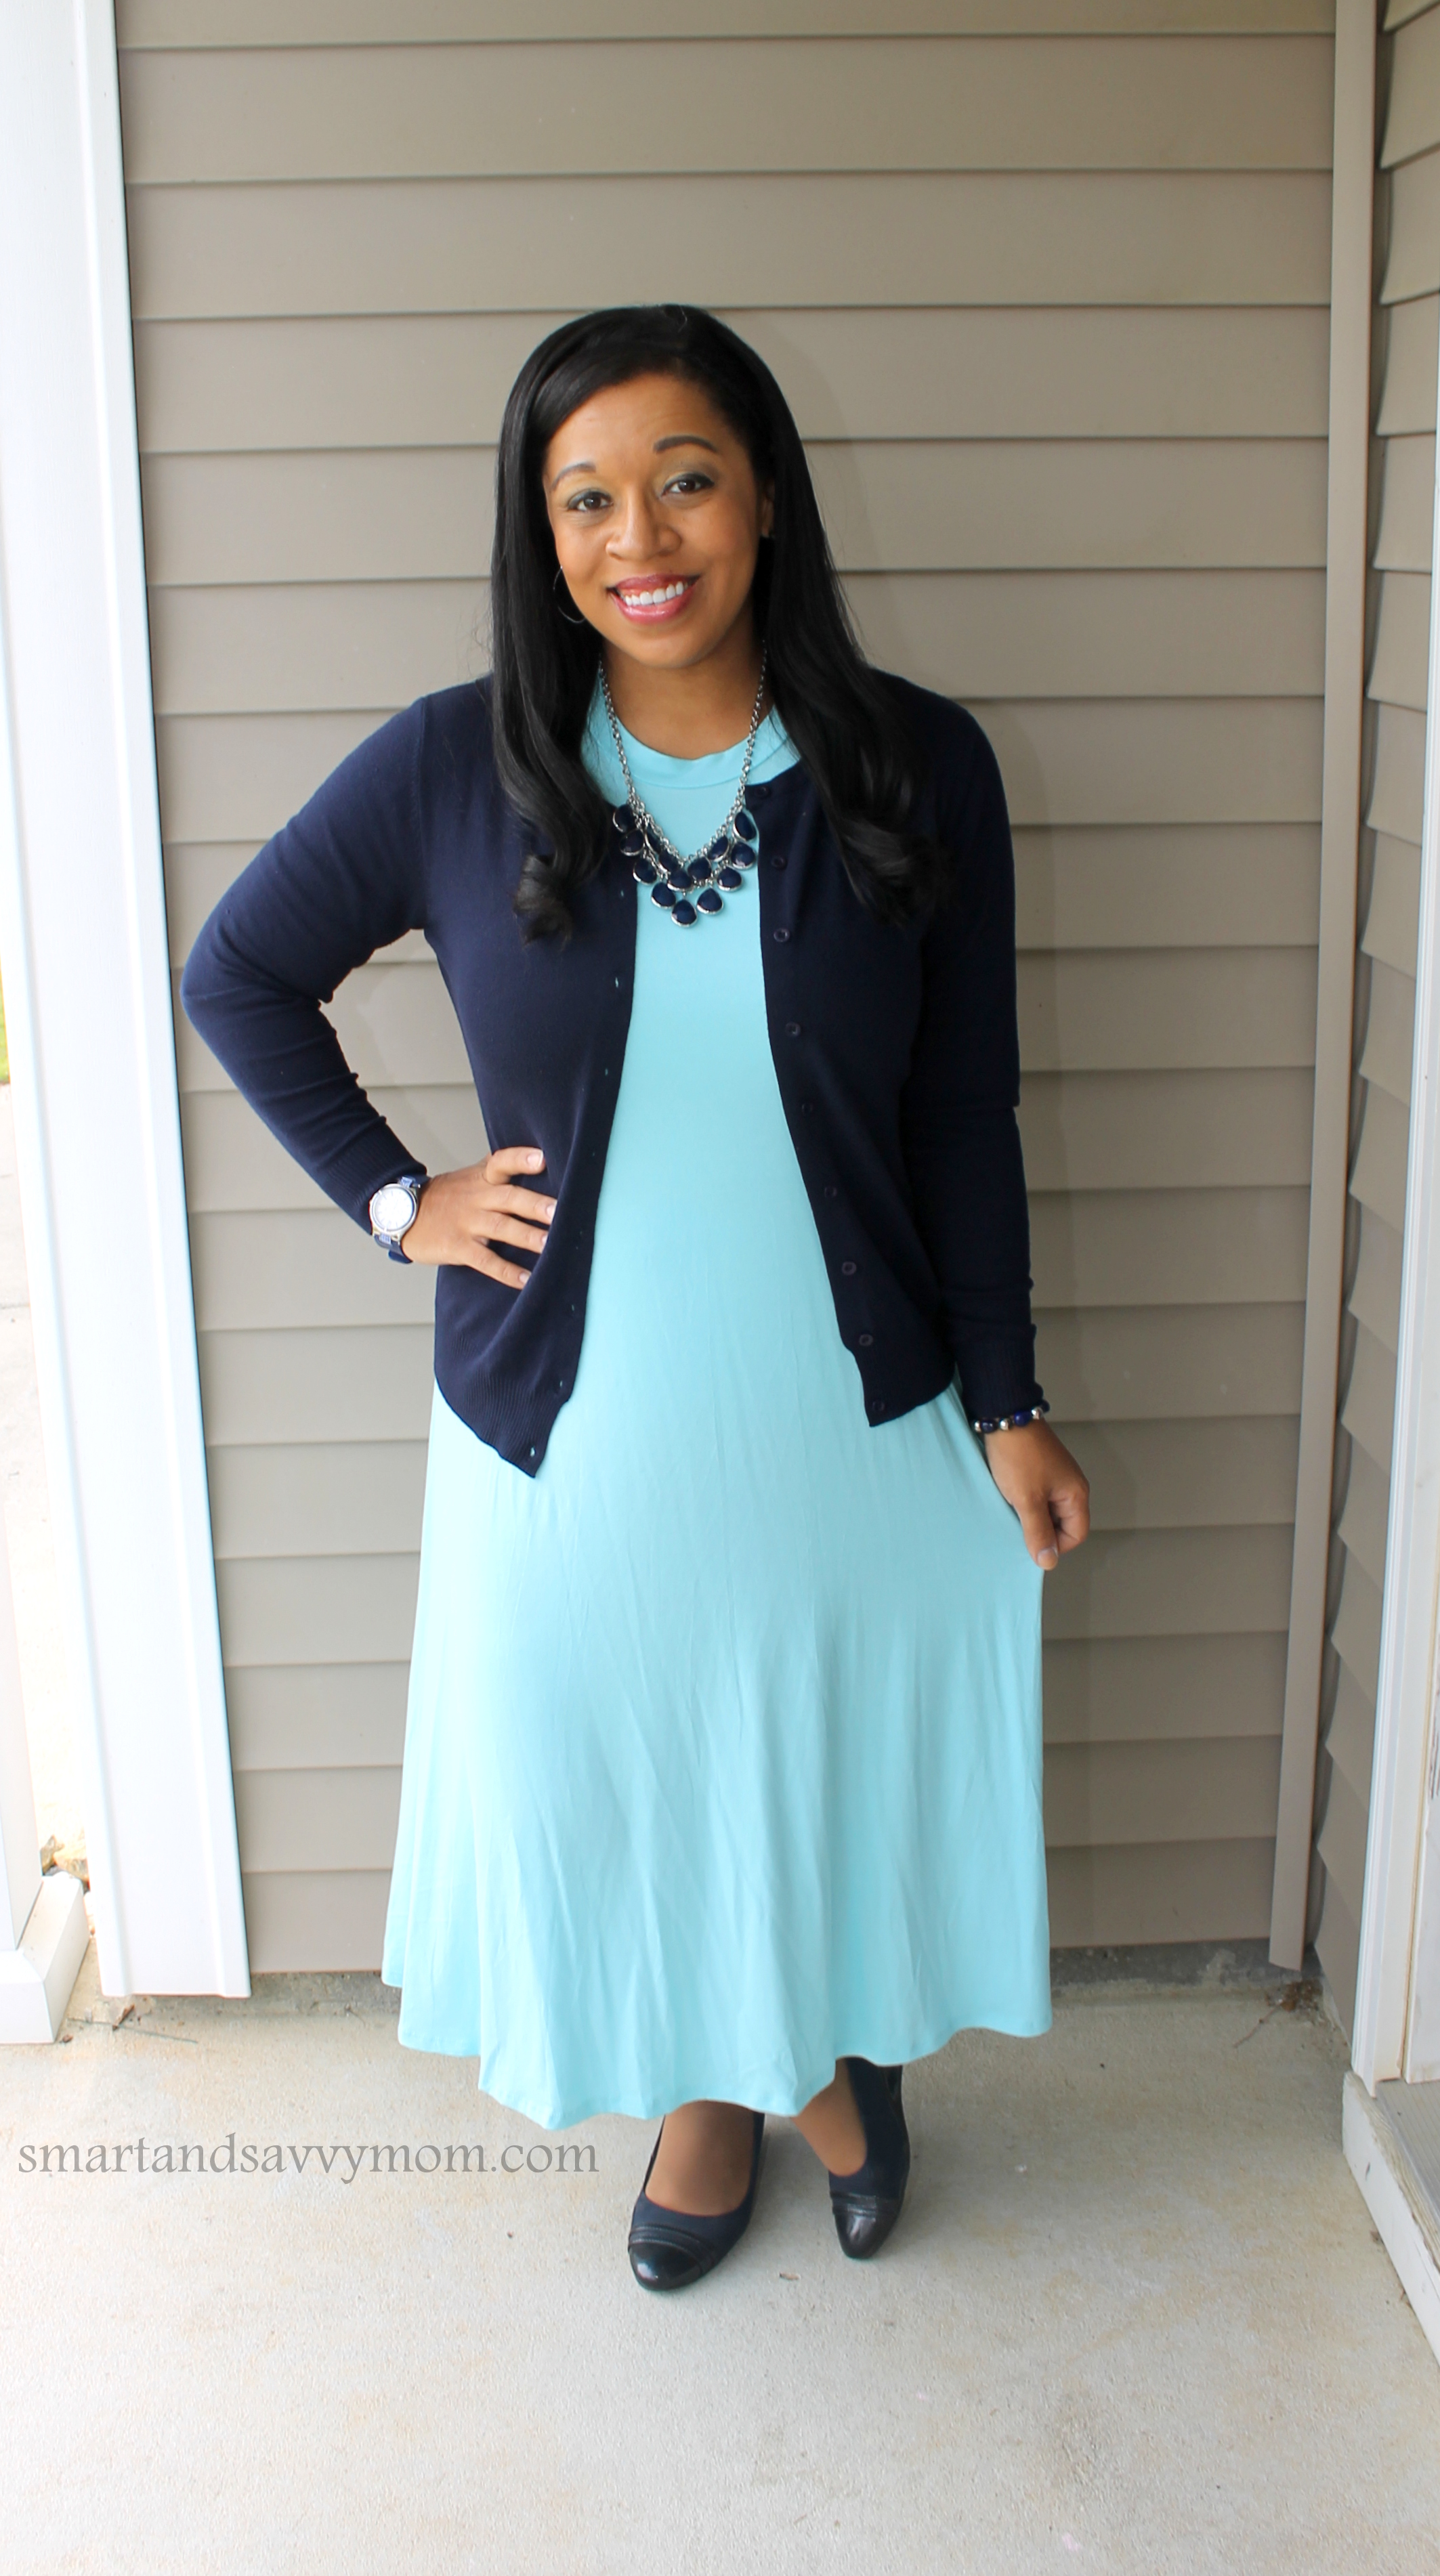 navy blue and pastel blue modest swing dress spring outfit idea. Teacher outfit idea